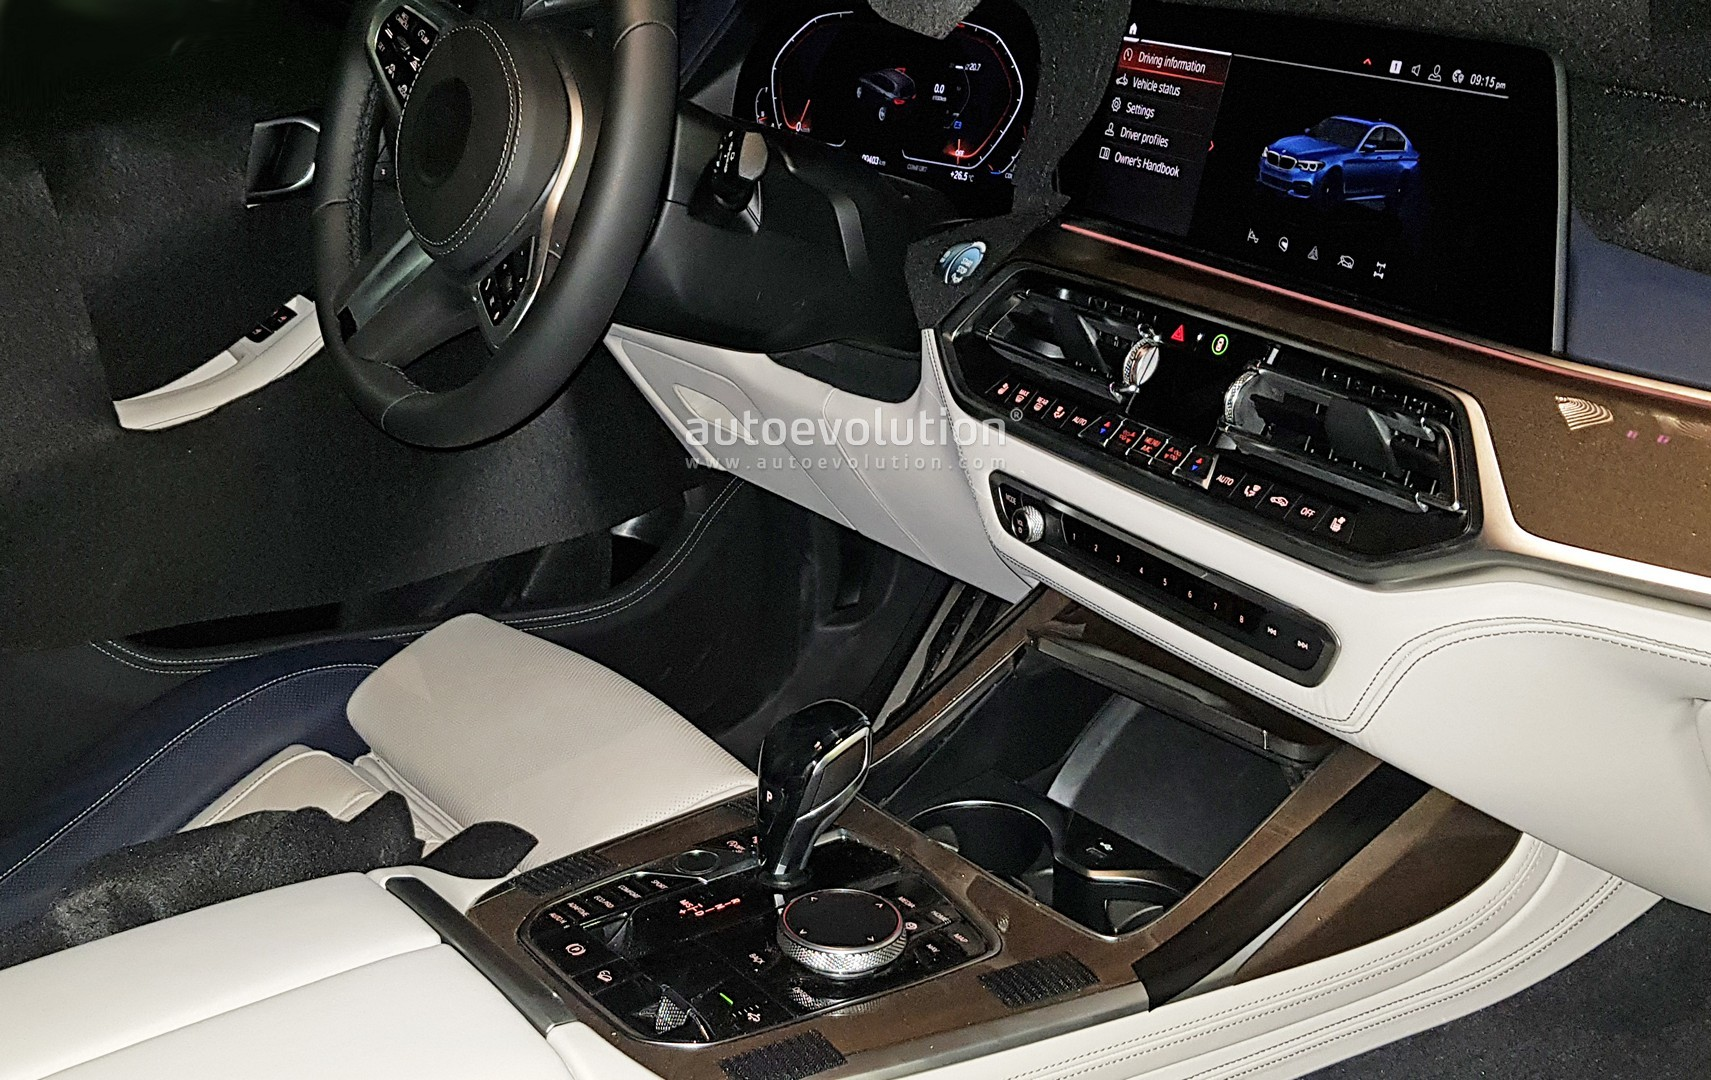 BMW X7 Shows Awesome 6Seat Interior in Latest Spyshots